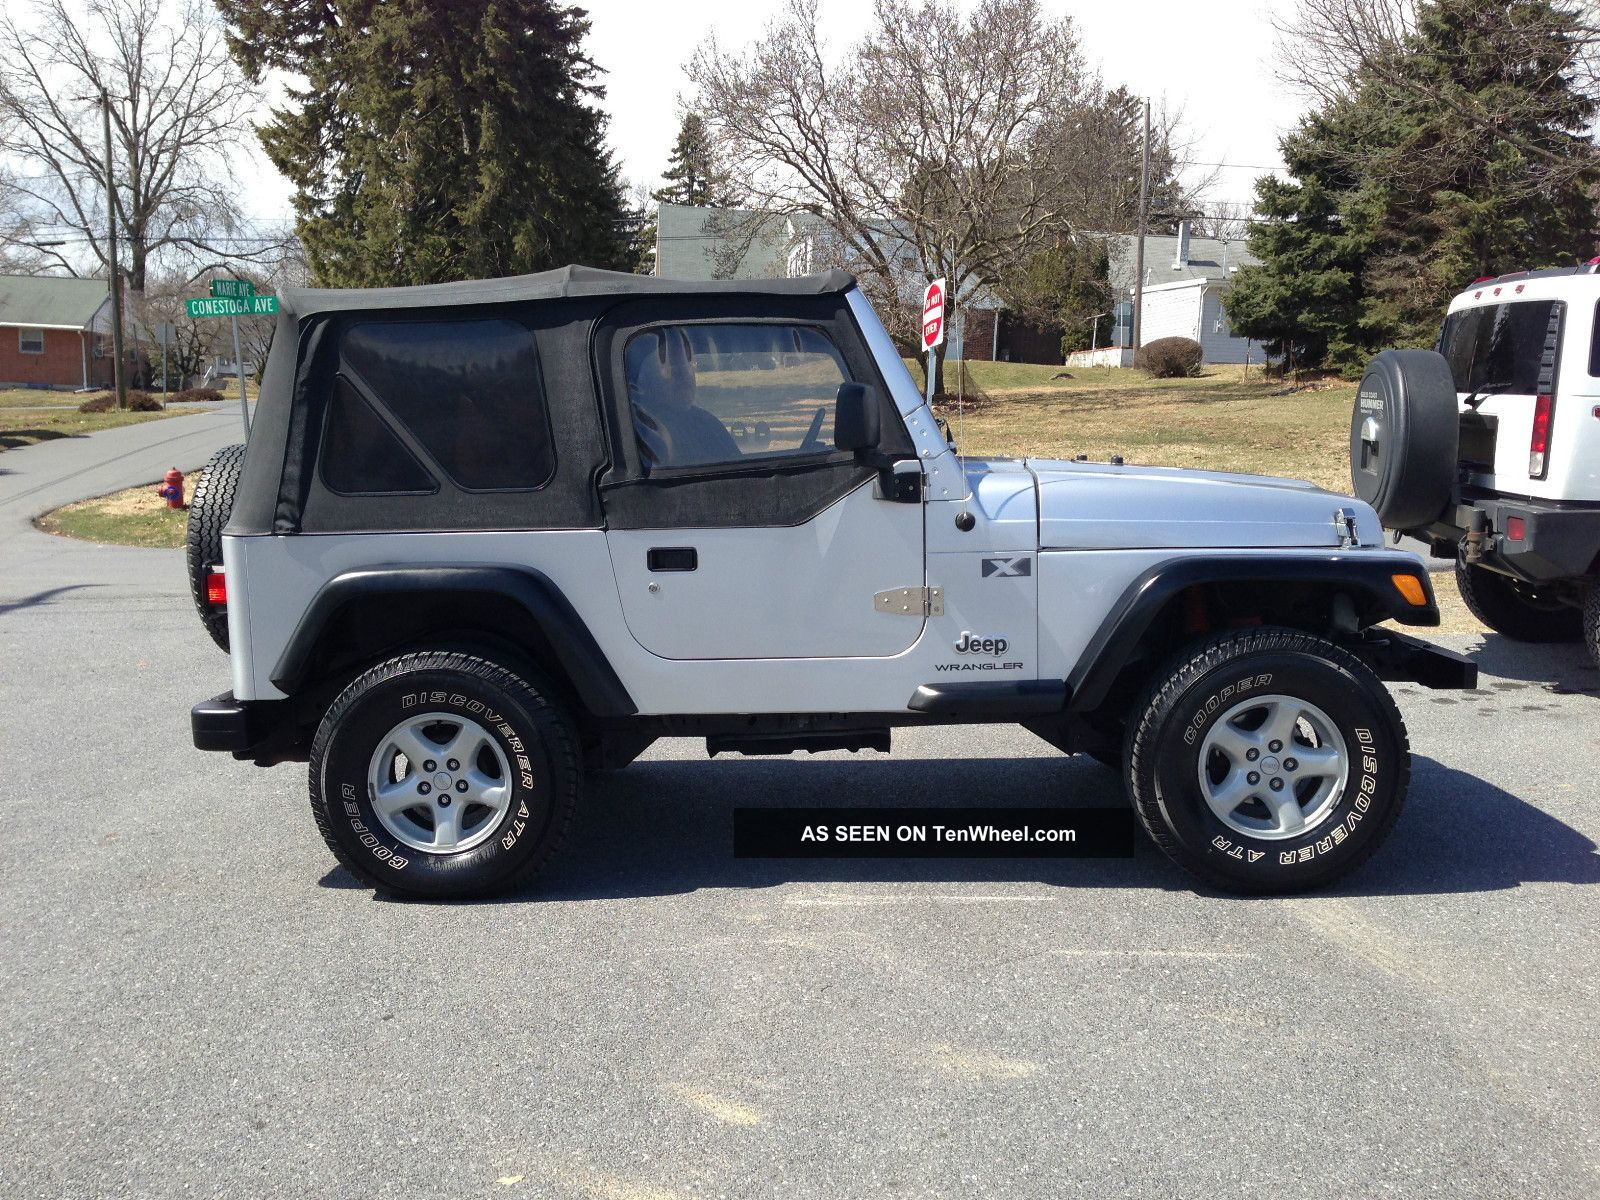 DSC 6269 in addition 2012 01 22 212905 sh as well  furthermore  together with  moreover 2003 jeep wrangler x sport utility 2   door 4   0l 1 lgw moreover  in addition  furthermore  further  together with  on jeep patriot keyless entry wiring diagram